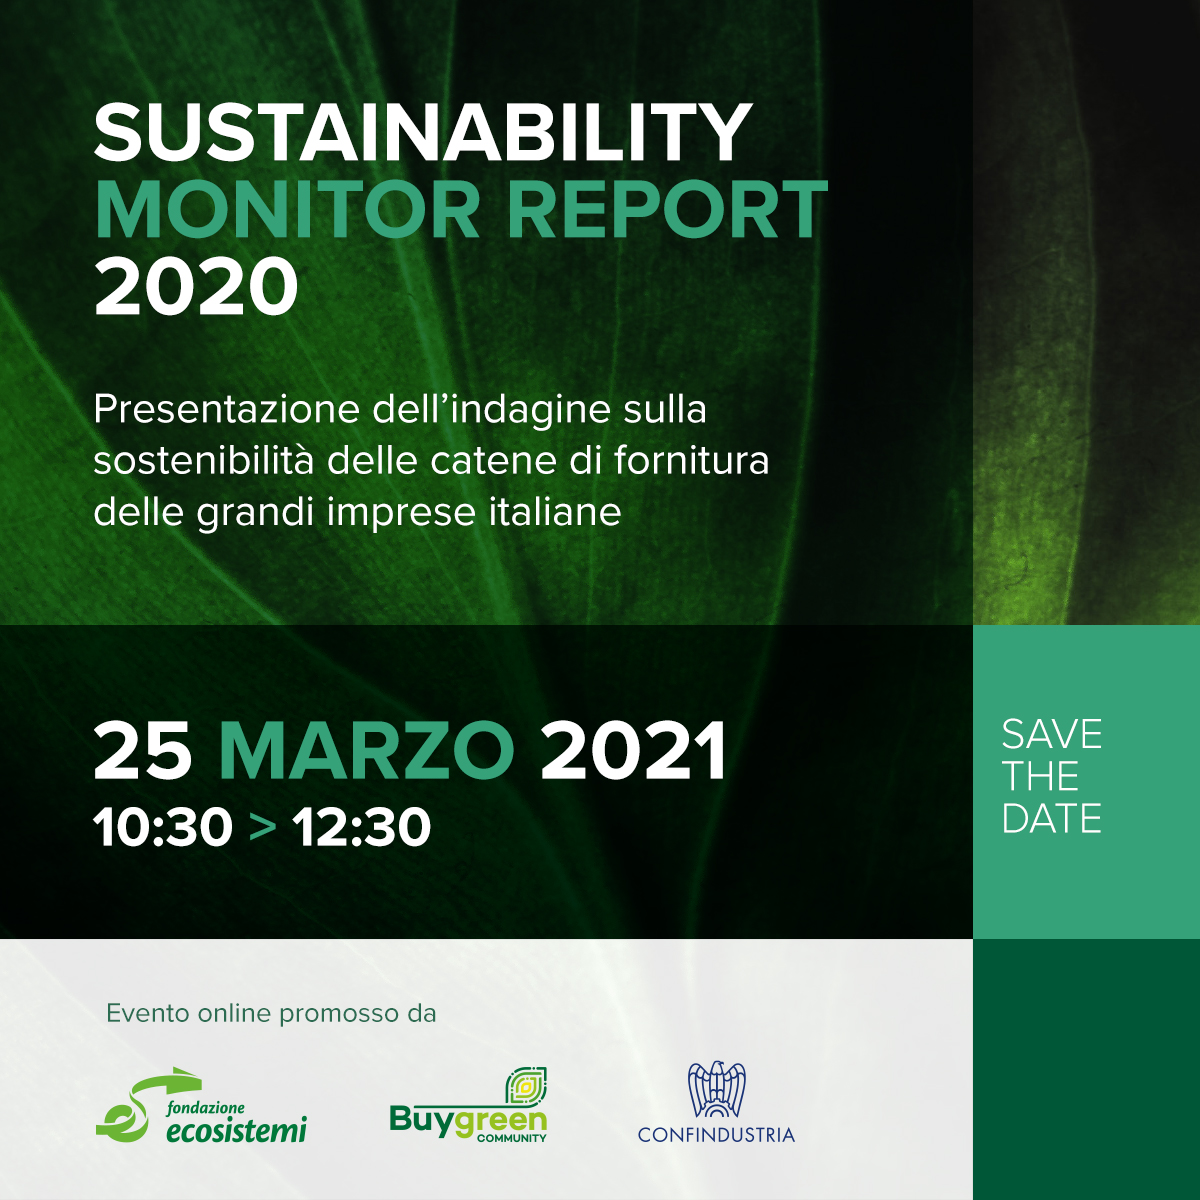 Sustainability Monitor Report 2020